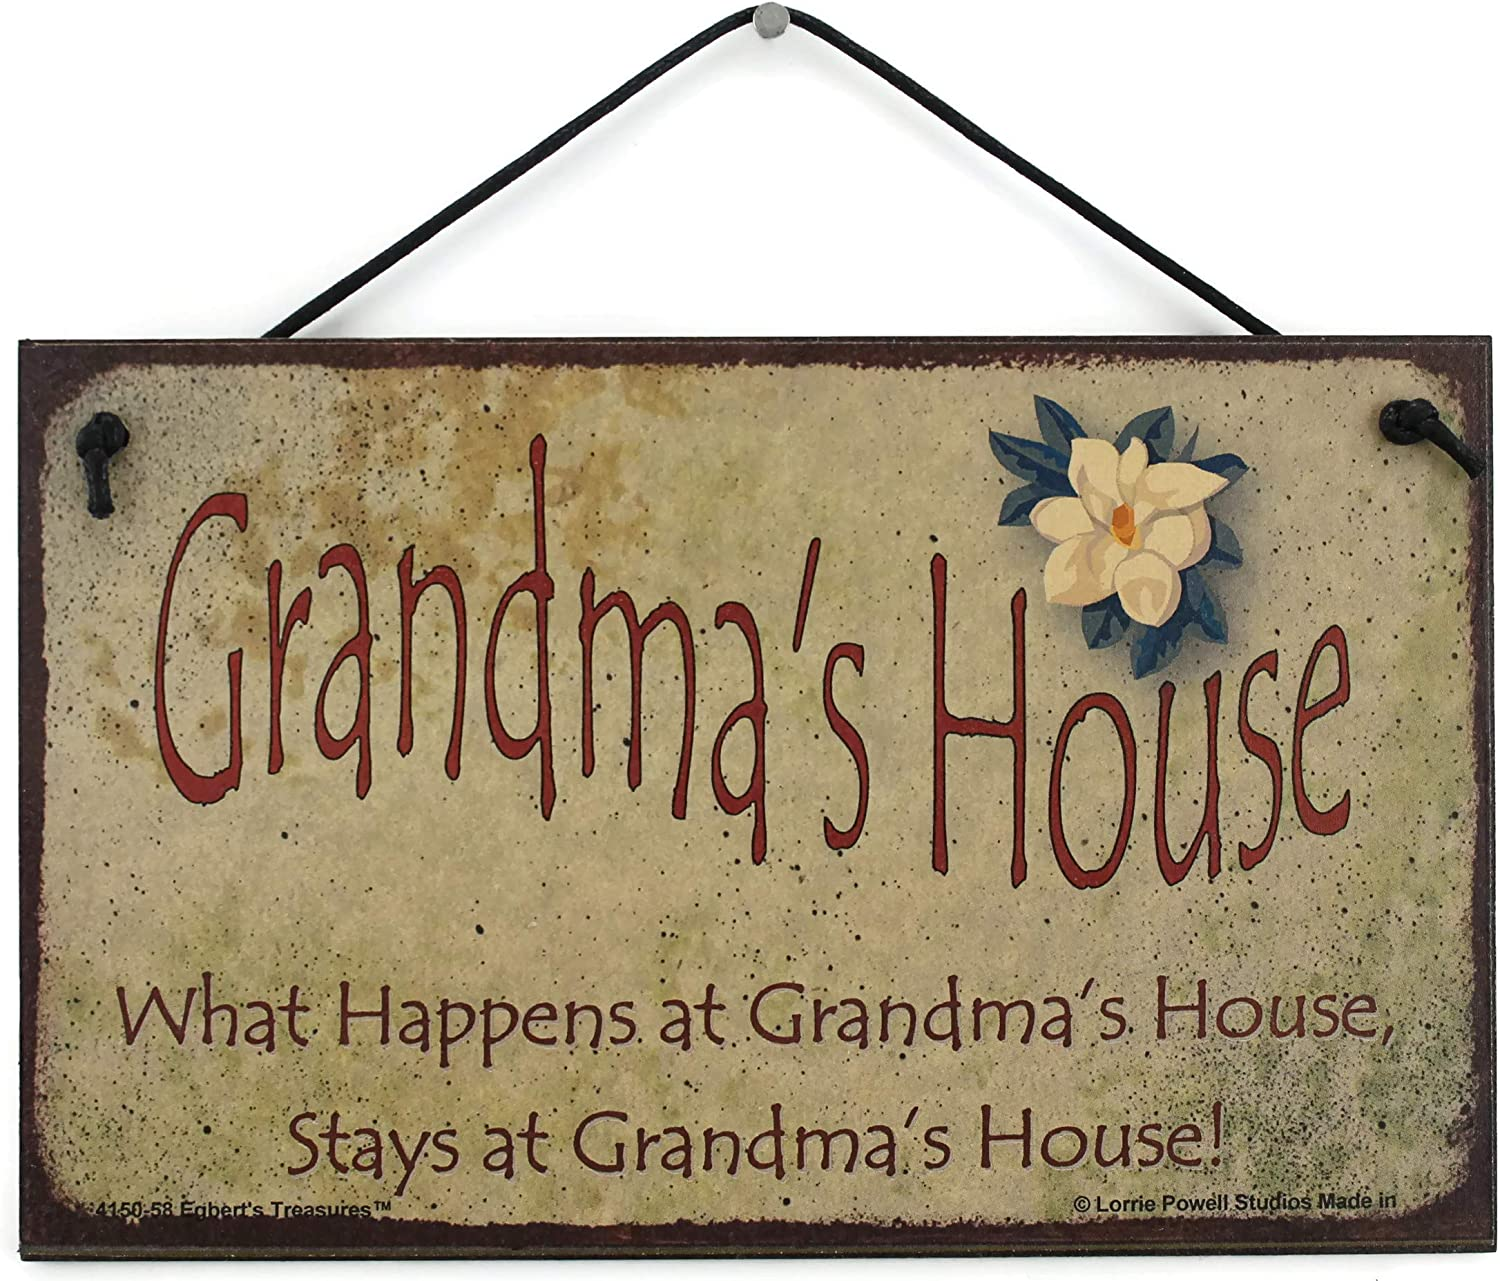 5x8 Vintage Style Sign with Magnolia Flower Saying,